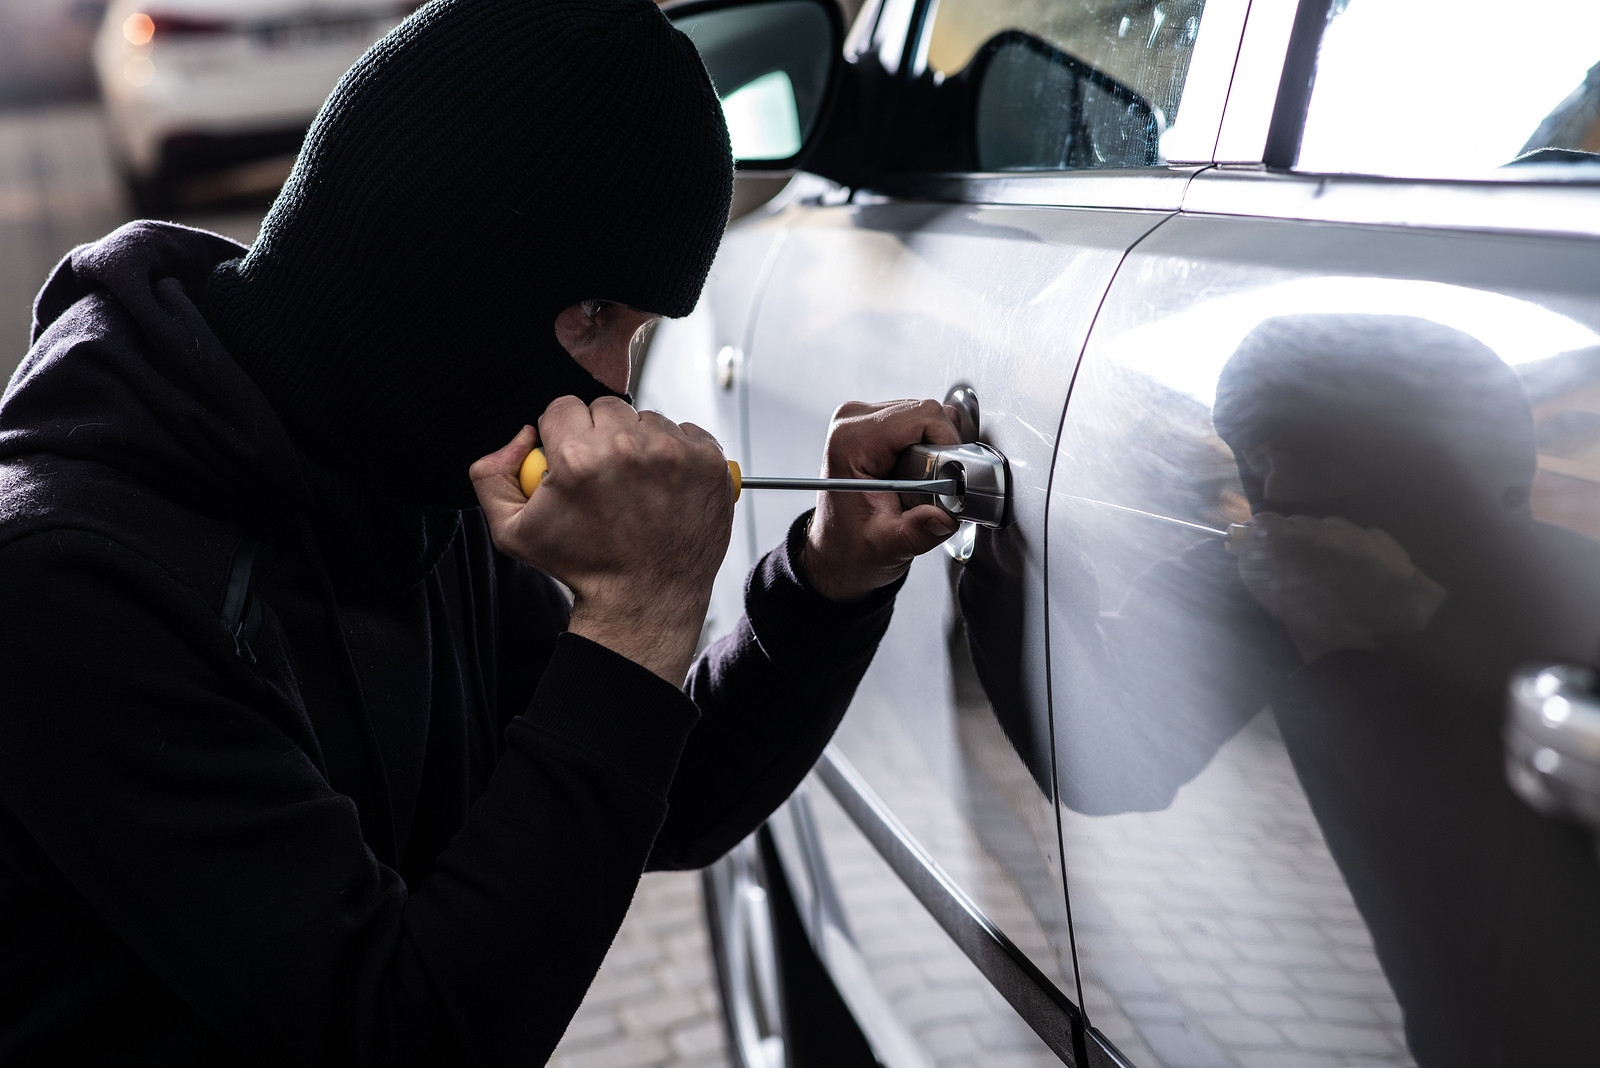 Man in balaclava using screwdriver on car door handle.